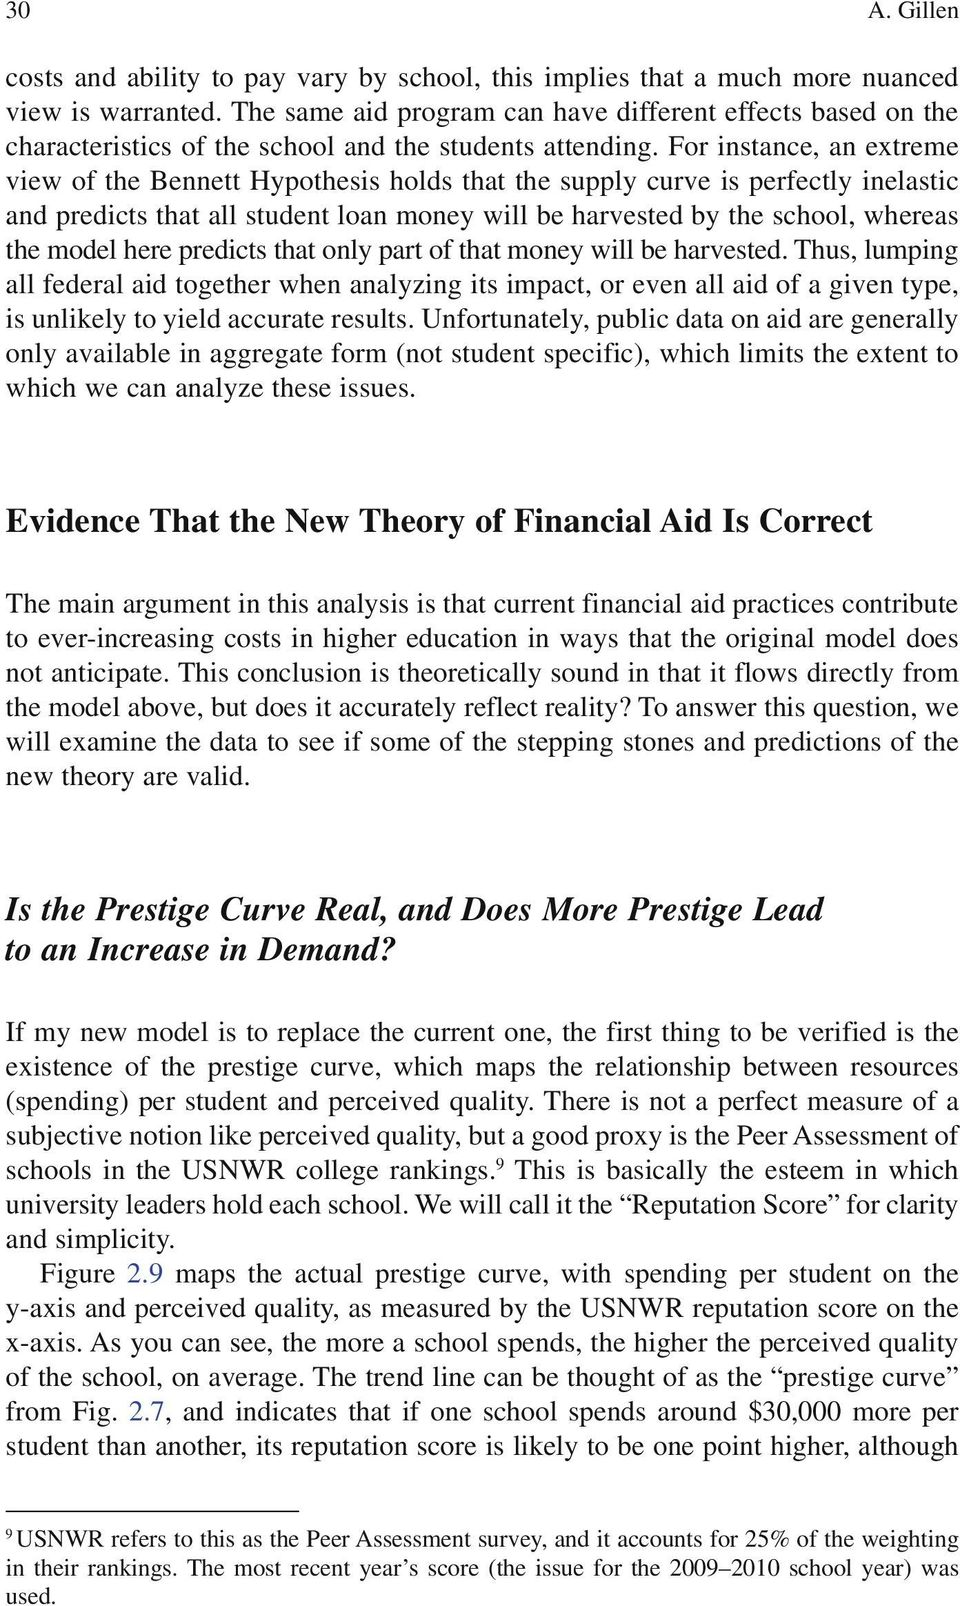 For instance, an extreme view of the Bennett Hypothesis holds that the supply curve is perfectly inelastic and predicts that all student loan money will be harvested by the school, whereas the model